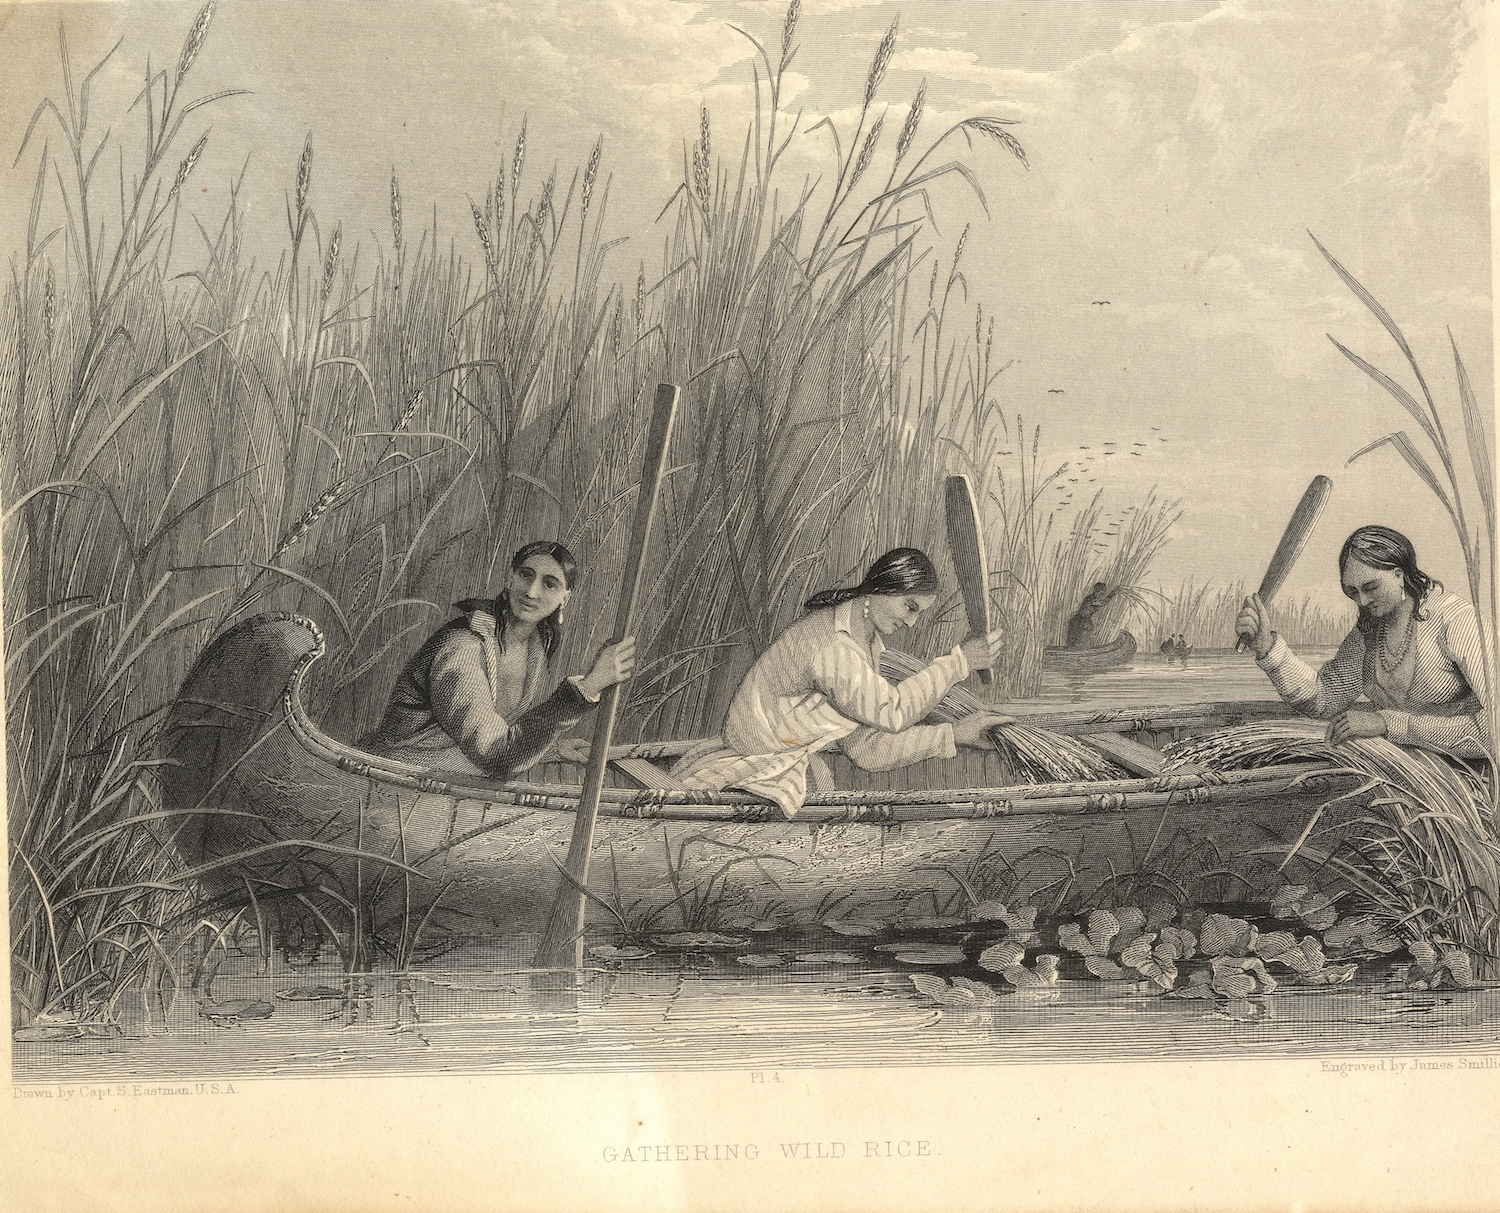 This illustration depicts three Native American women knocking wild rice grains into their canoe with paddles.